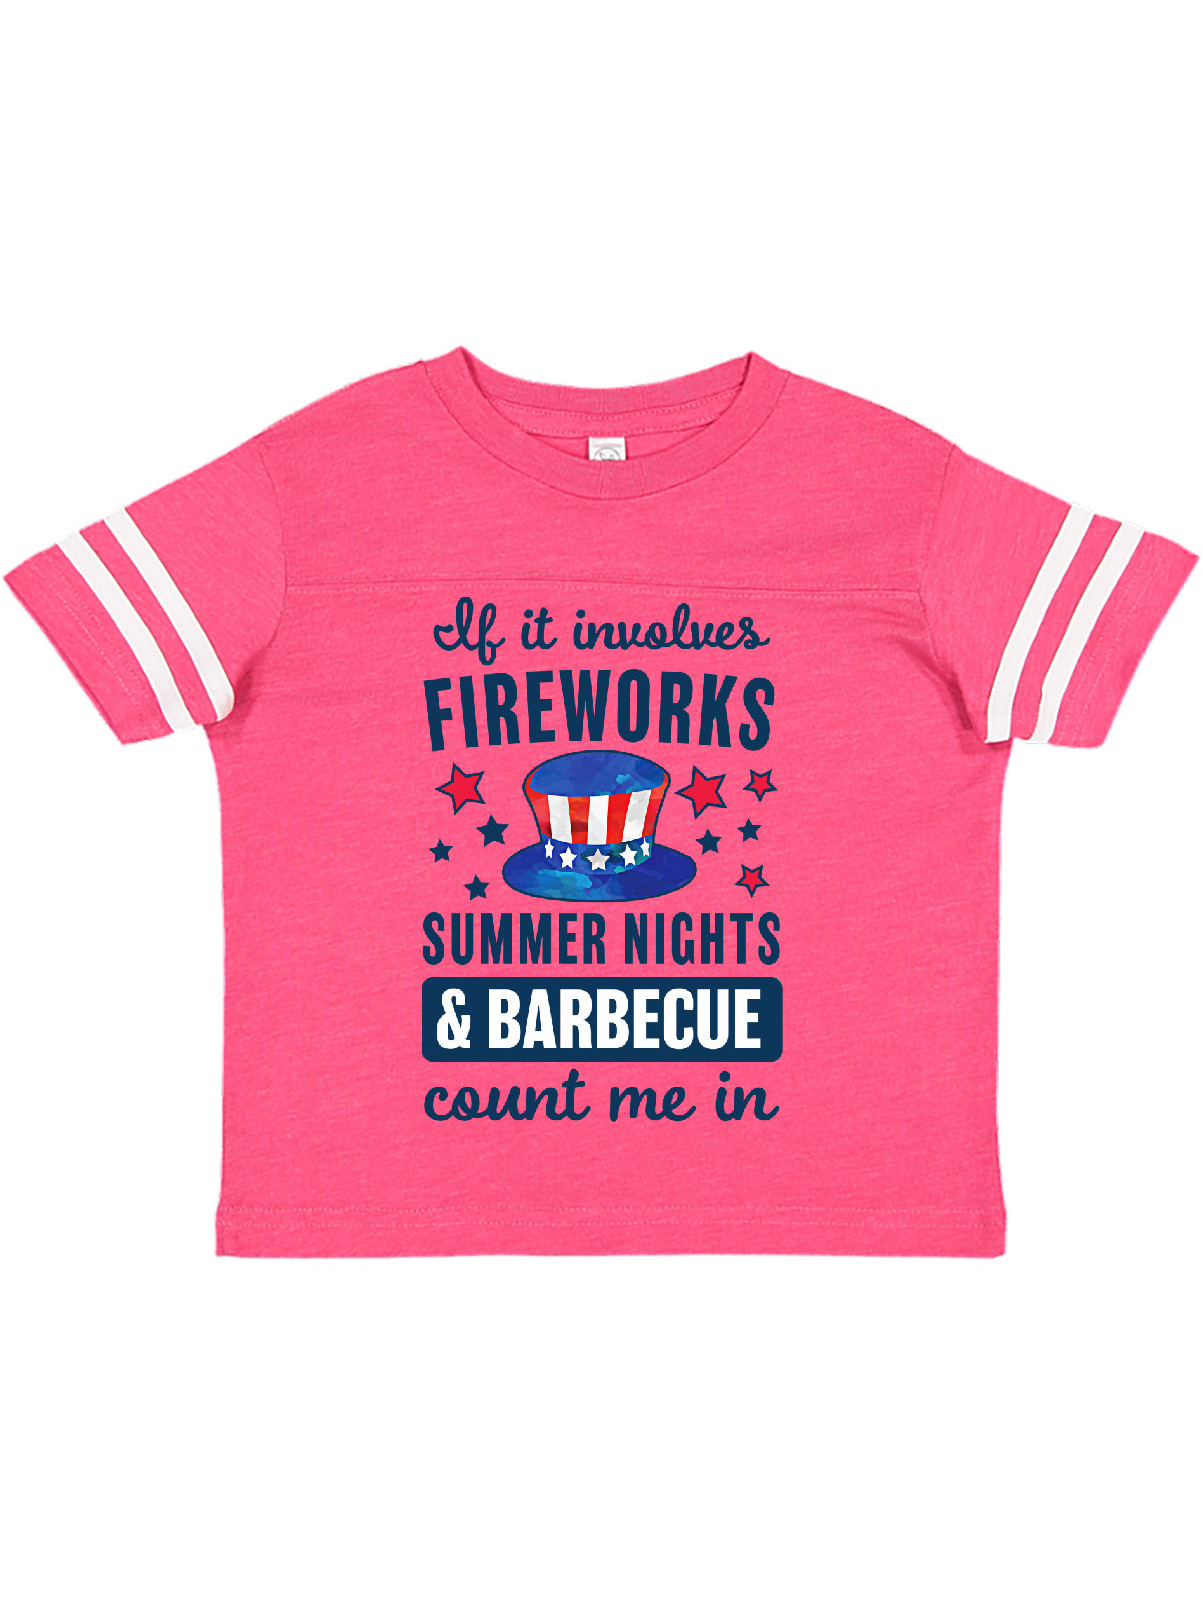 4th Of July If It Involves Fireworks Summer Nights Barbecue Count Me In Toddler T Shirt Walmart Com Walmart Com